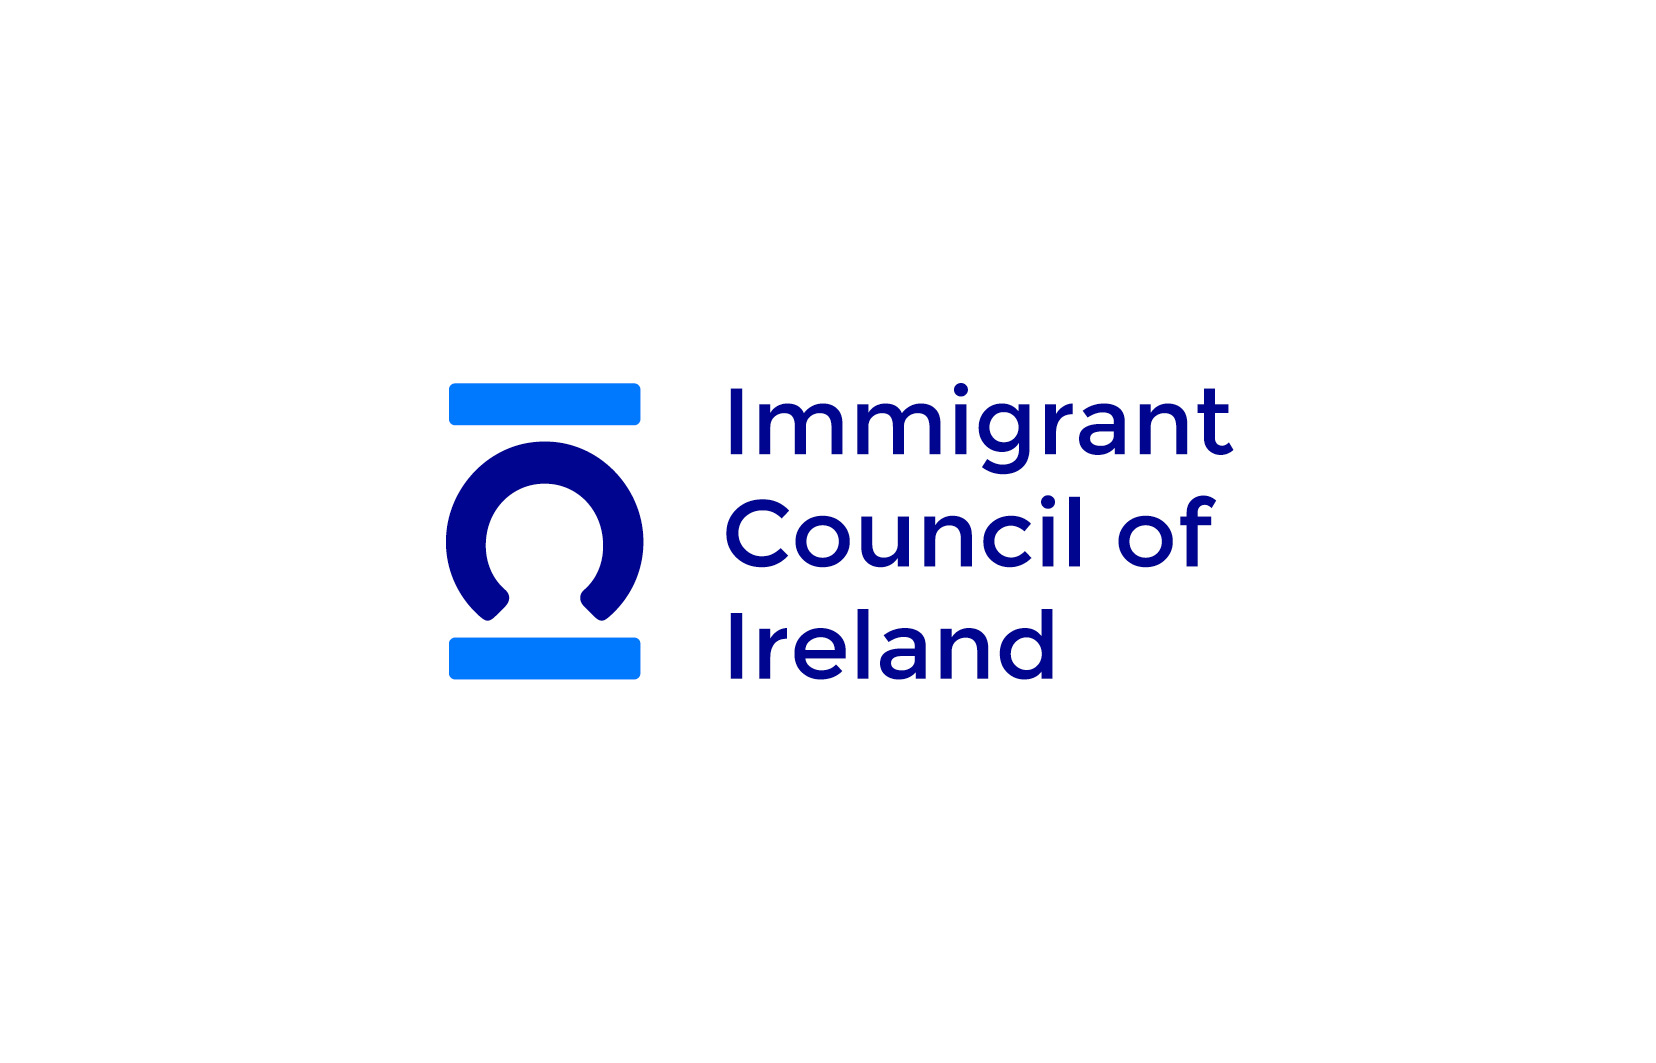 Immigrant Council of Ireland logo design and graphic design